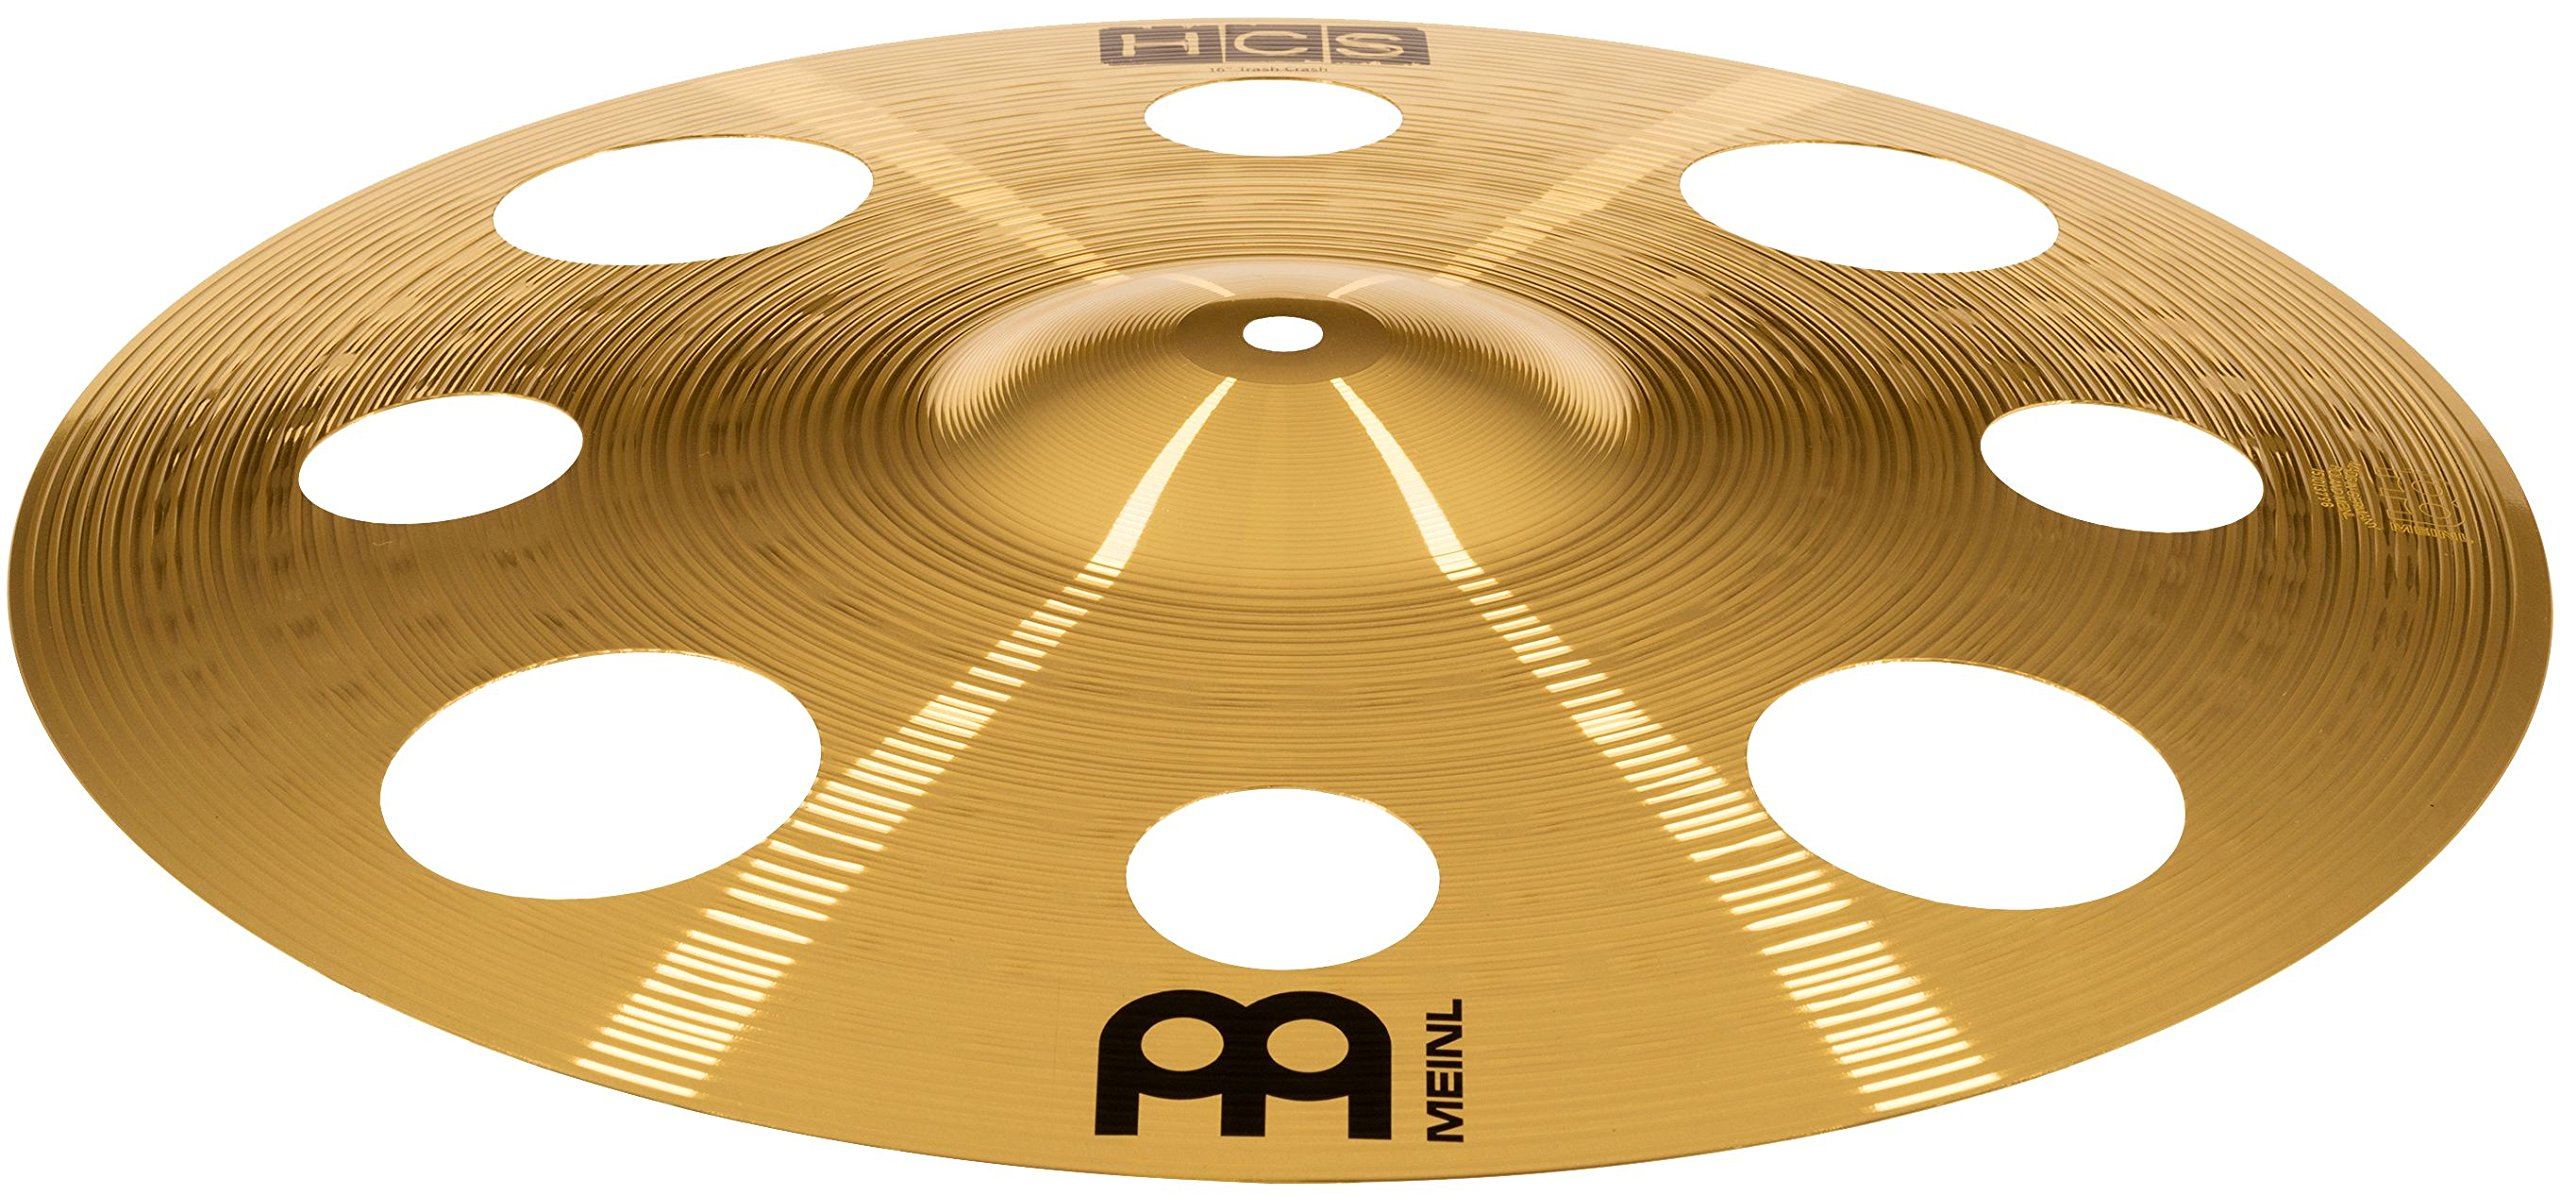 Meinl Cymbals HCS16TRC 16'' HCS Brass Trash Crash Cymbal for Drum Set (VIDEO) by Meinl Cymbals (Image #3)